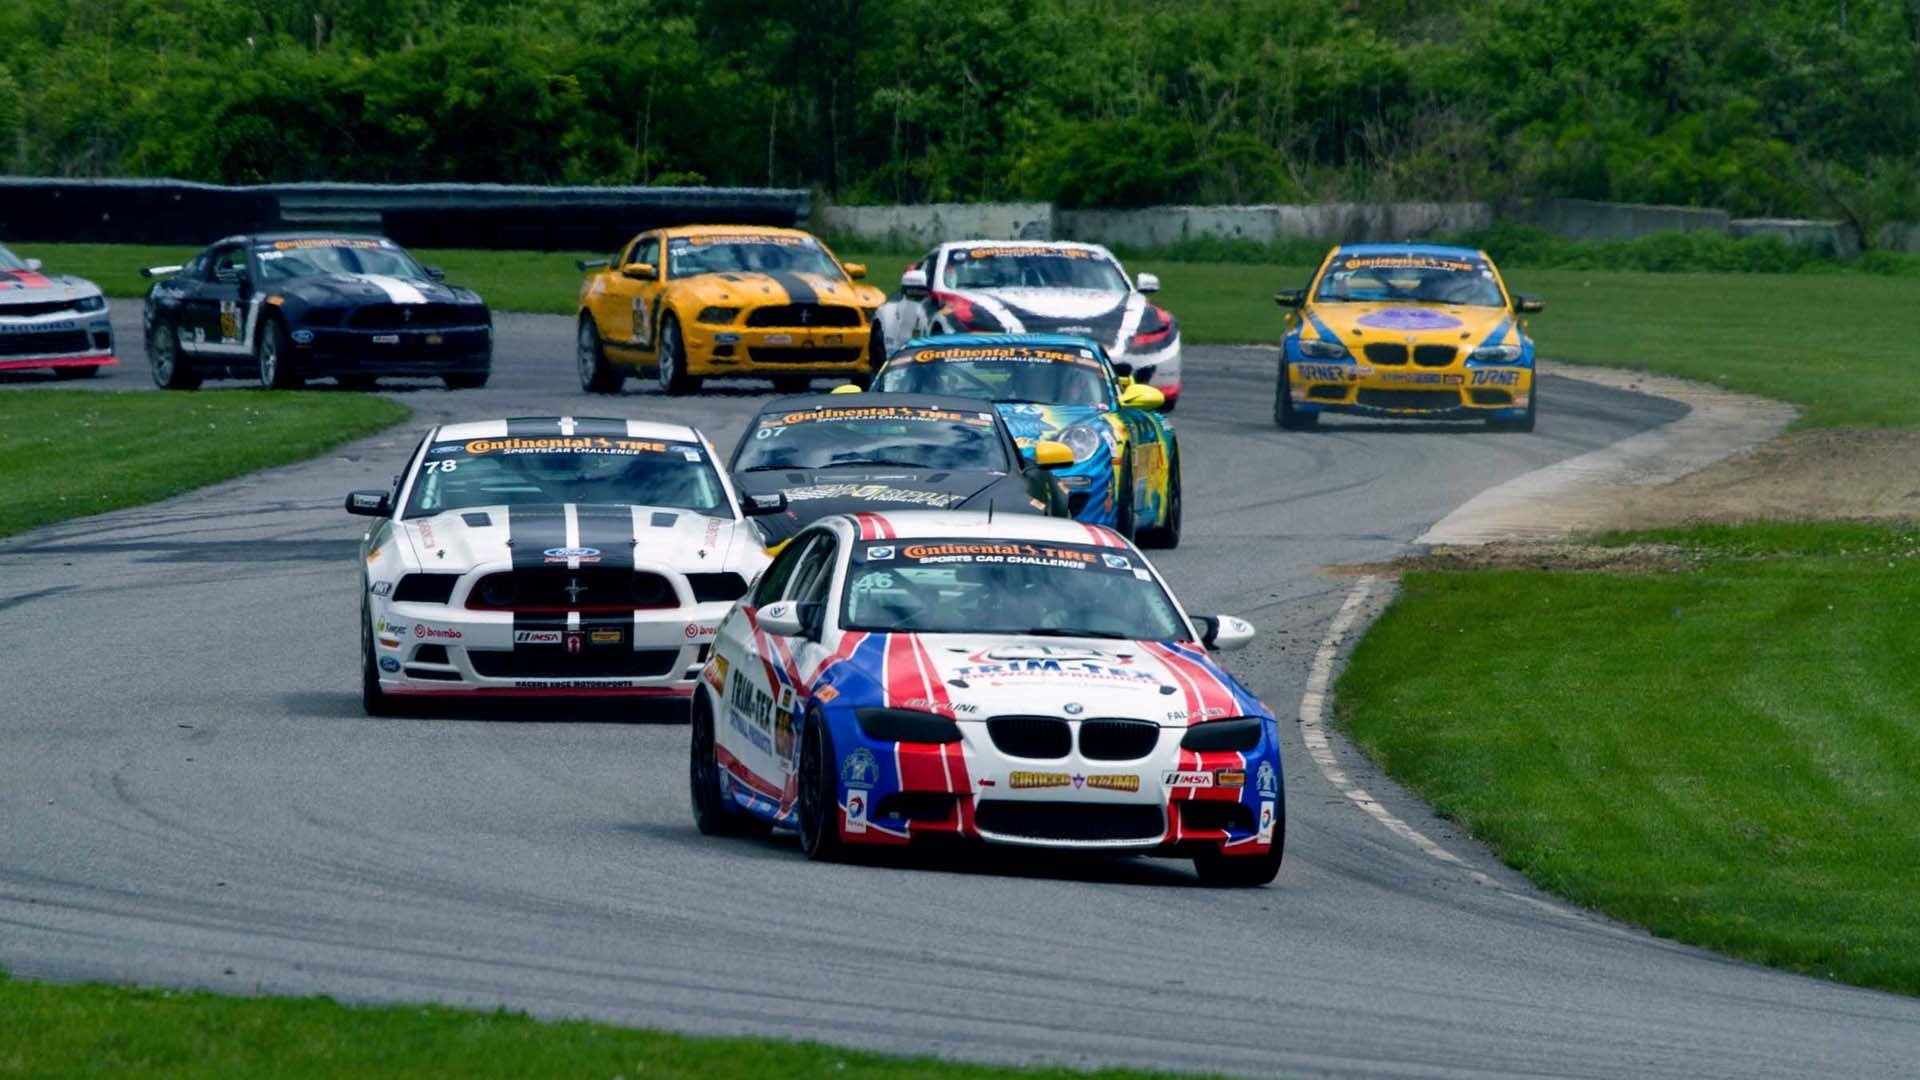 The Lime Rock Historical Festival 35, From Lime Rock Park in Connecticut